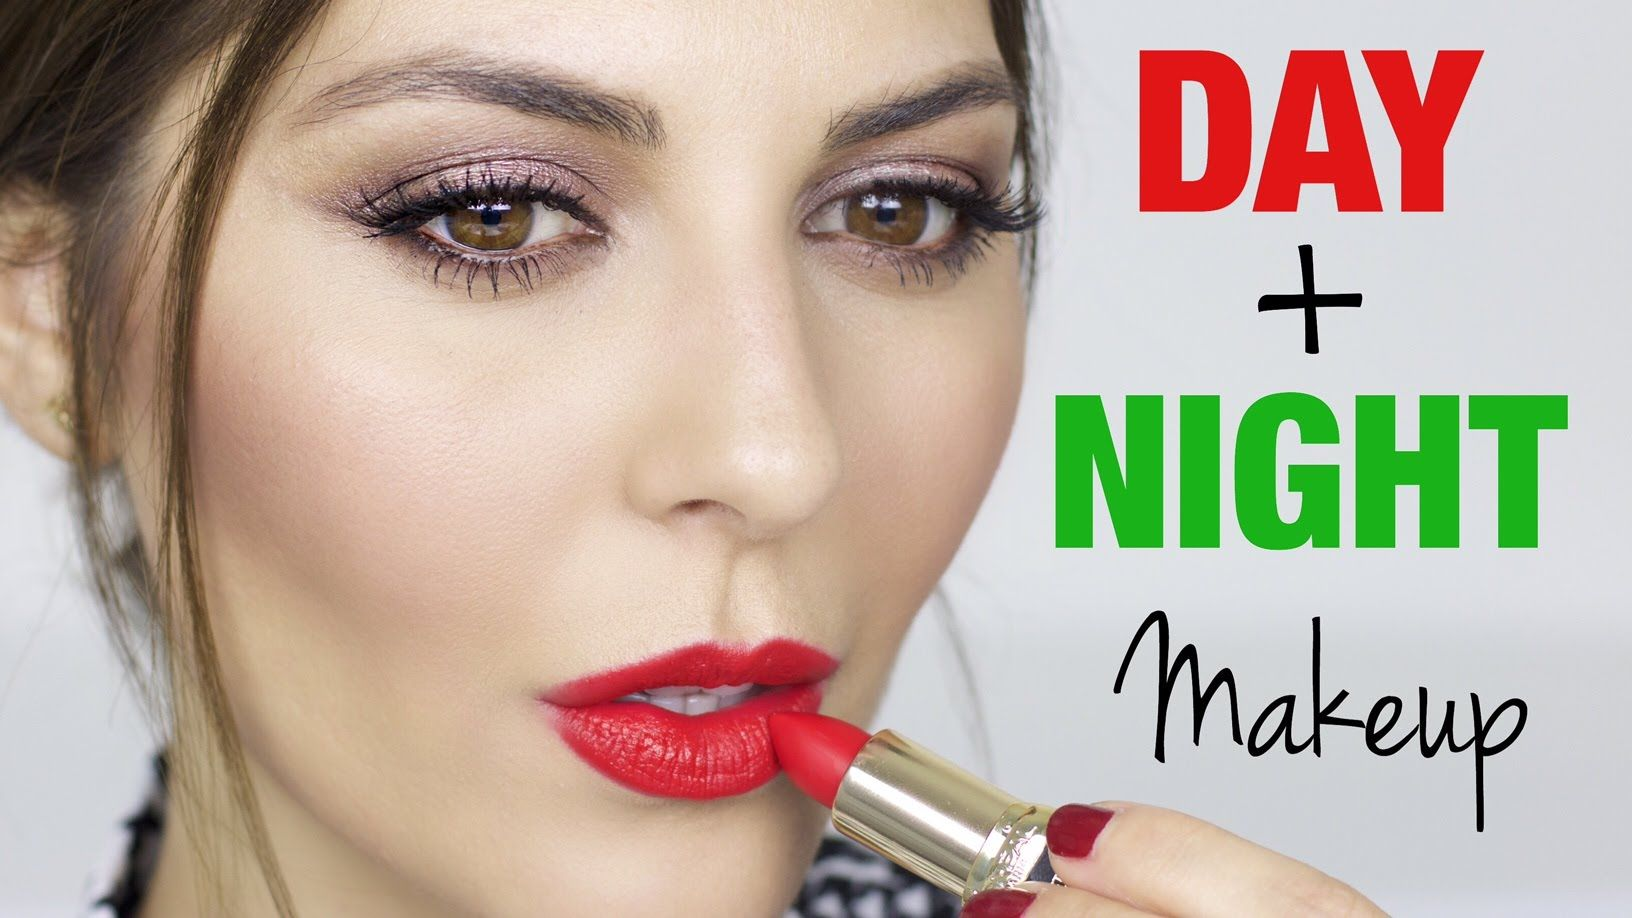 Day-To-Night Holiday MakeupTips